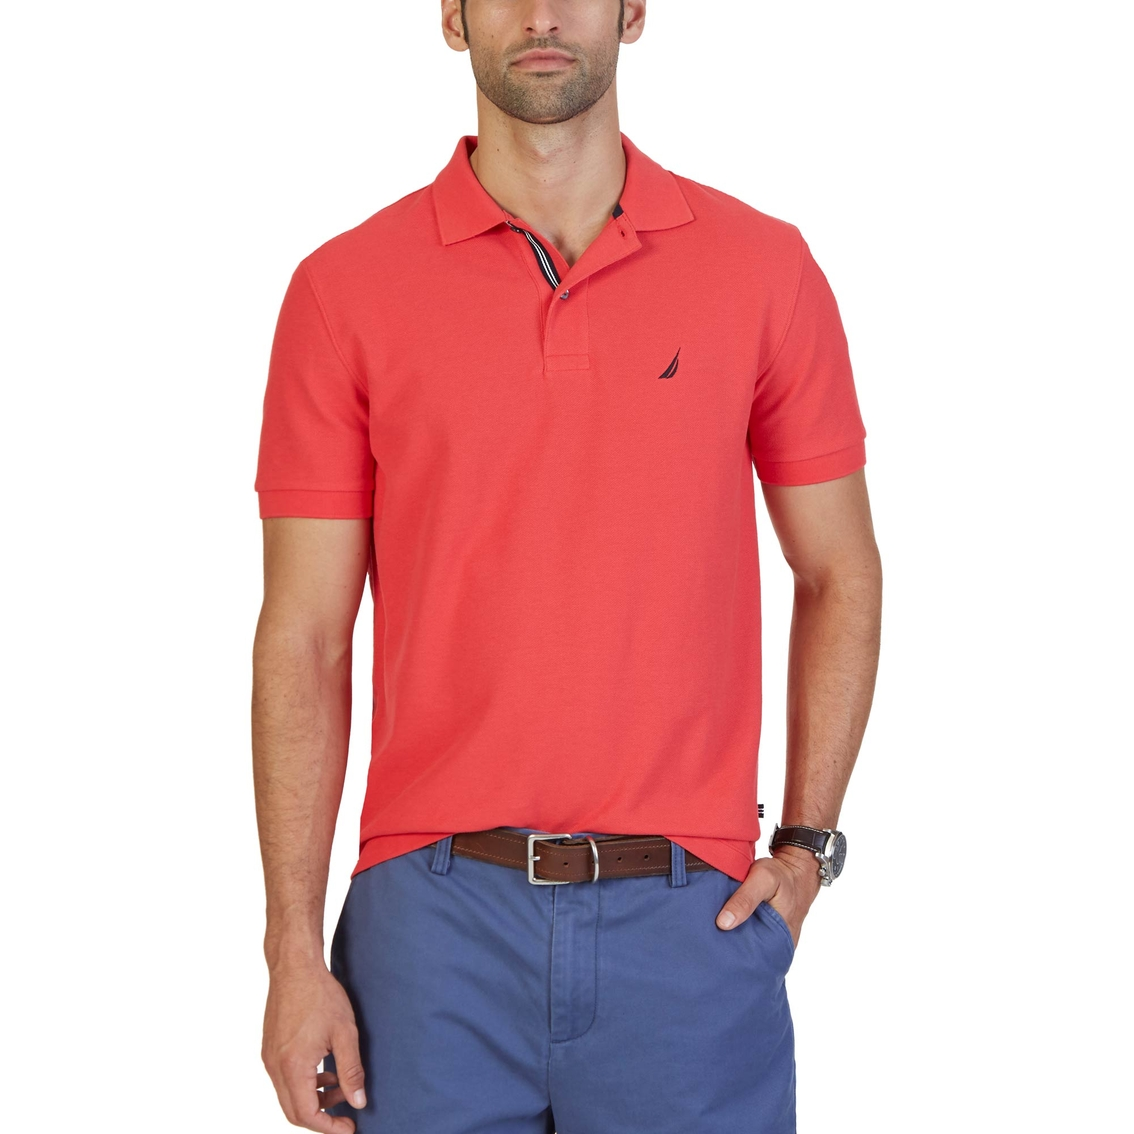 nautica classic fit performance deck polo shirt polos